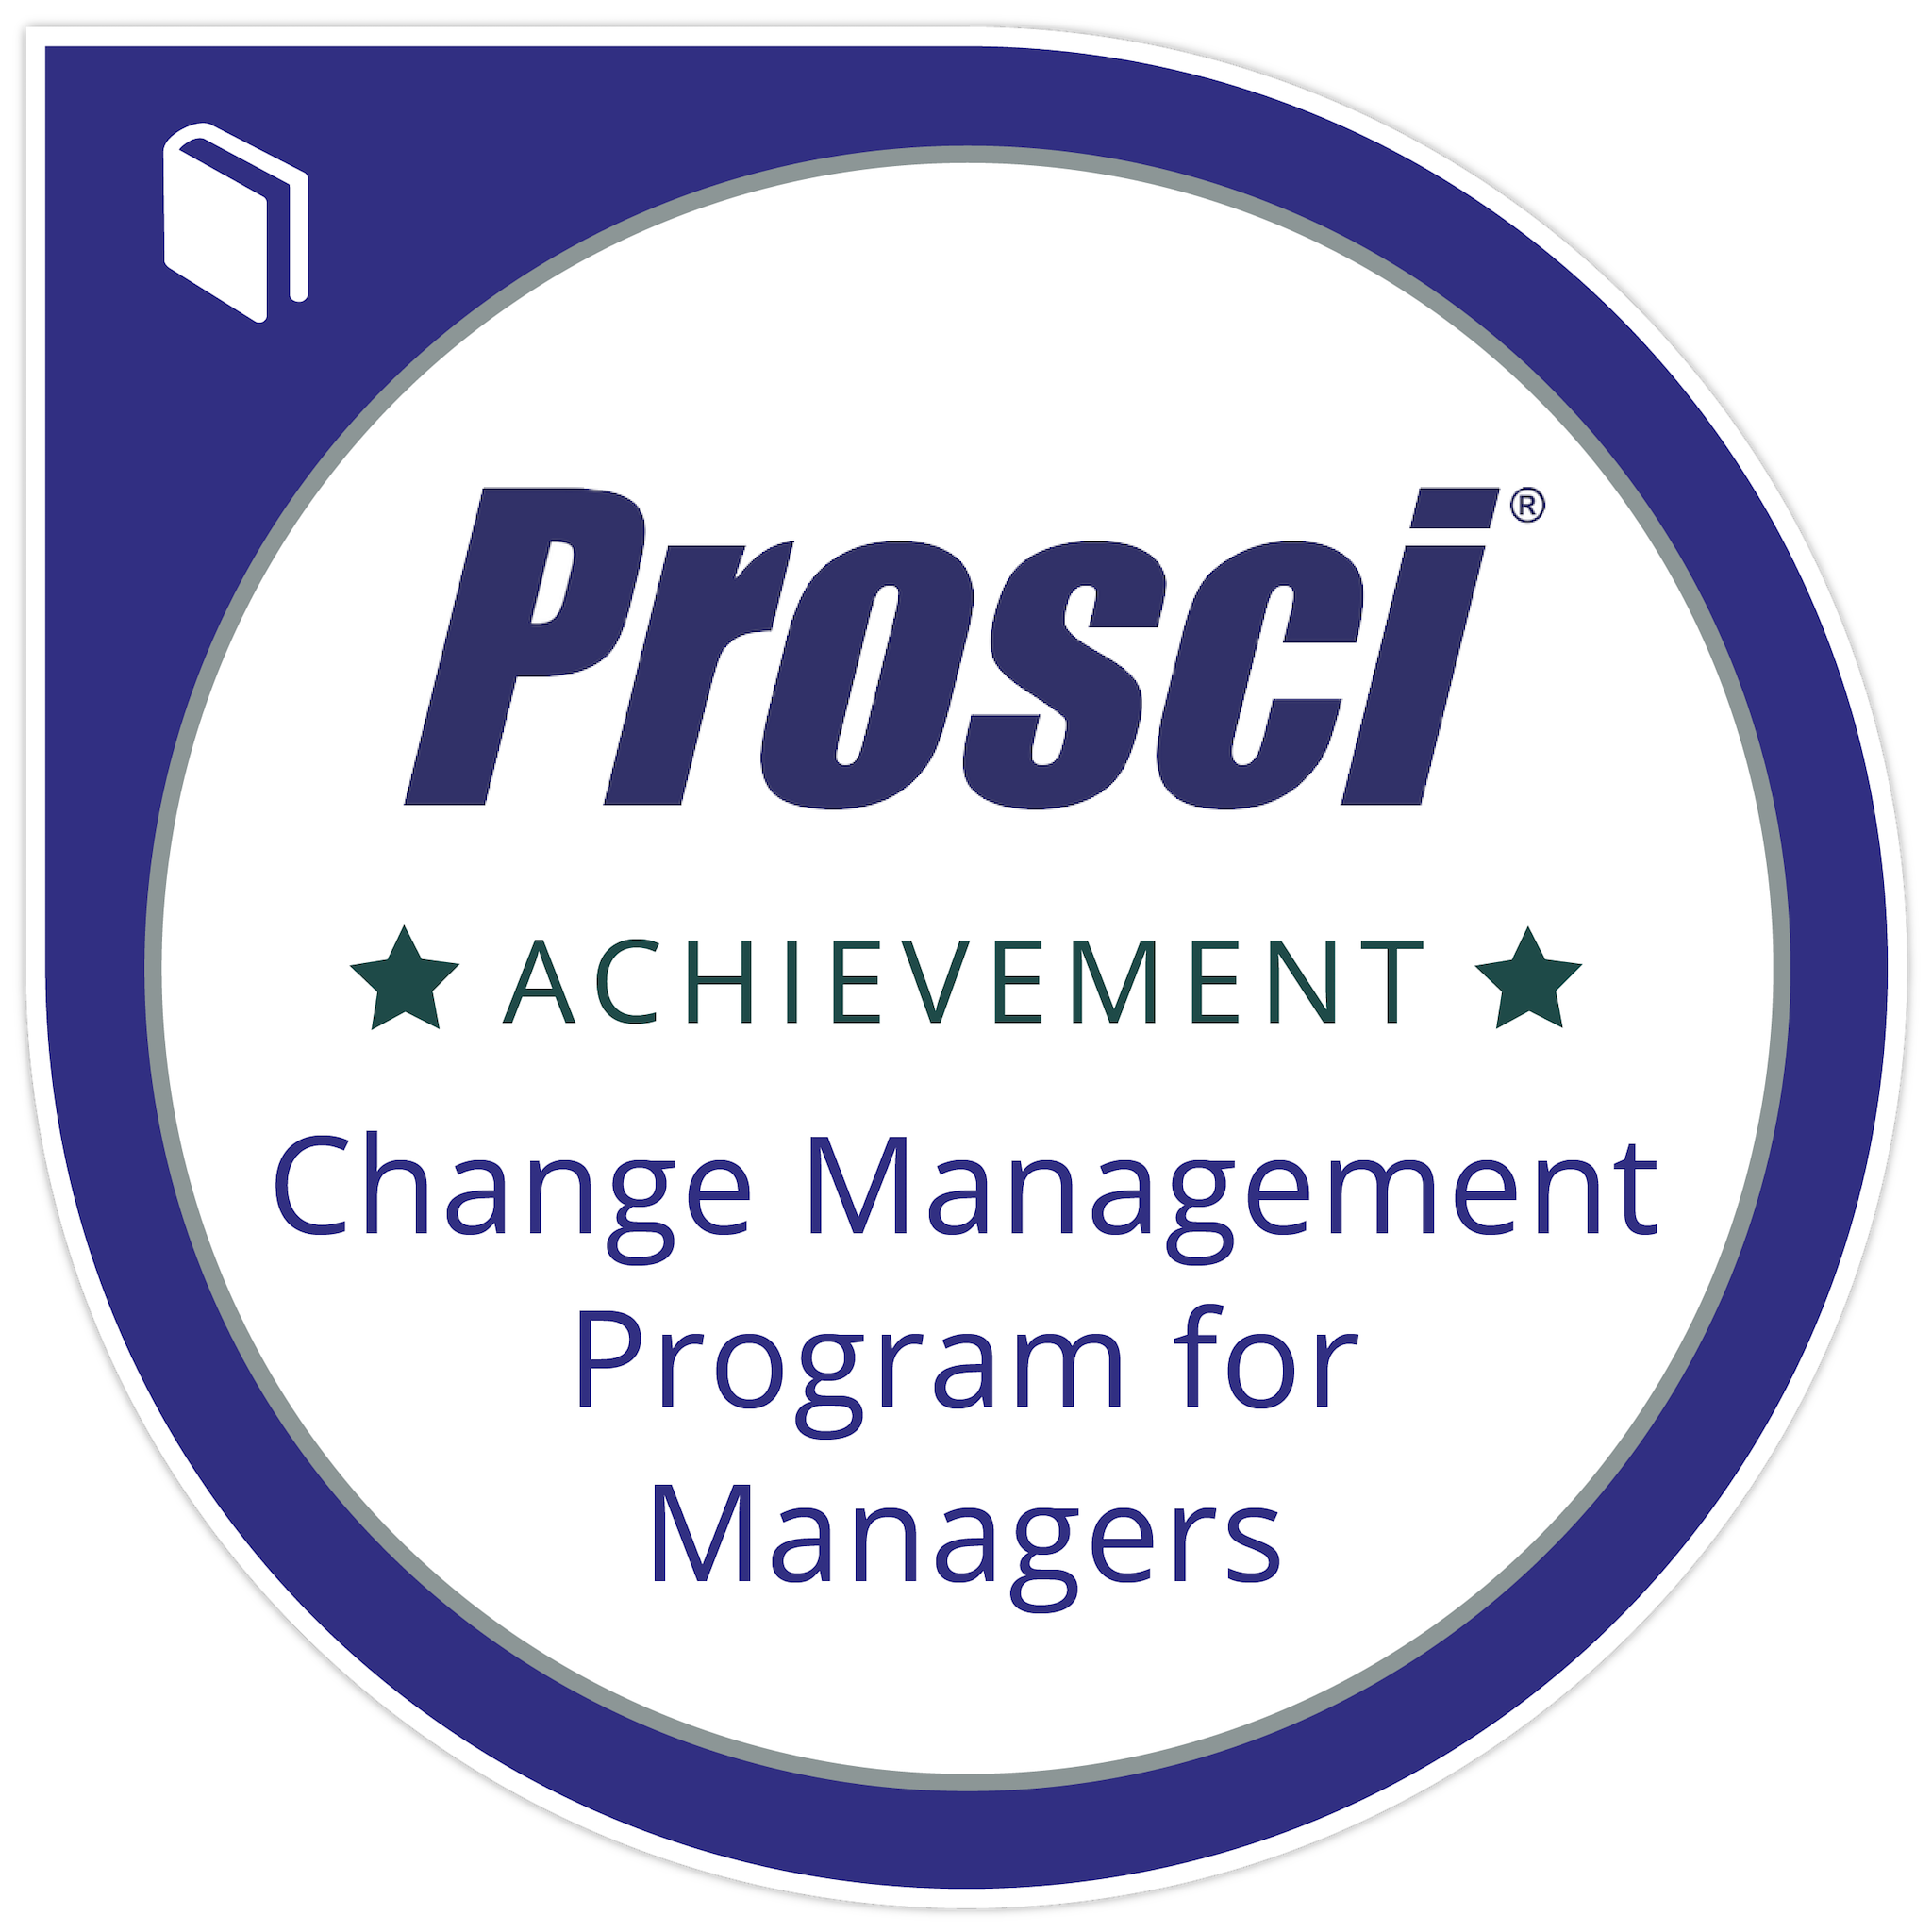 Prosci® Change Management Program for Managers